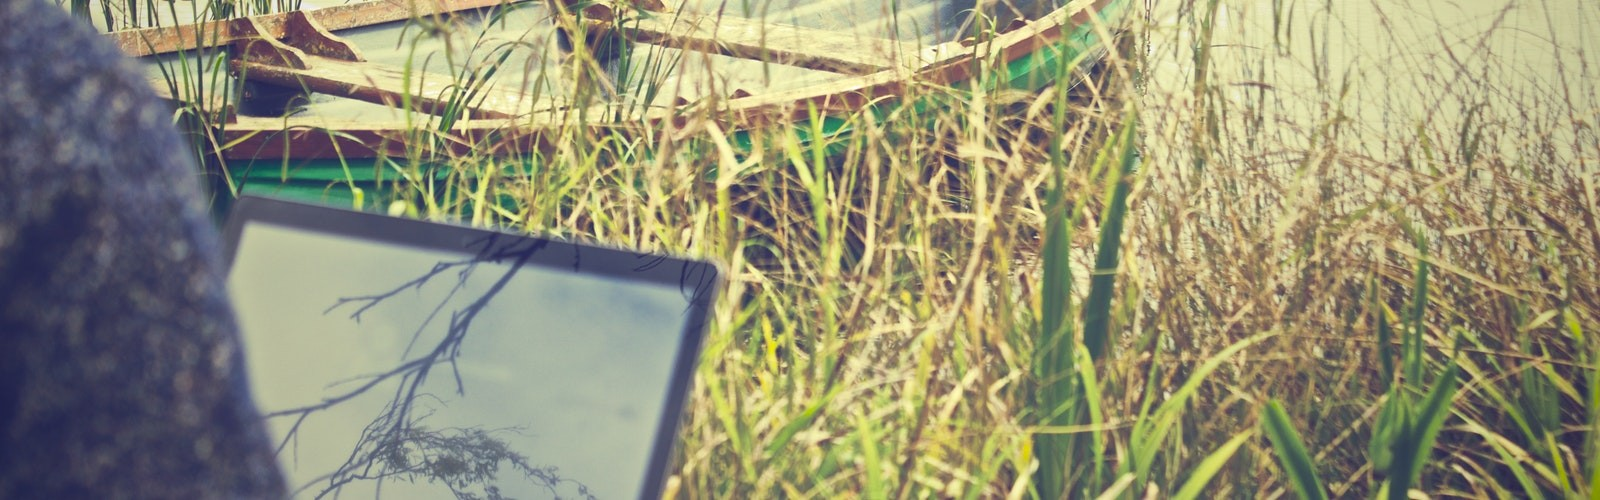 Are remote workers more productive than office workers?